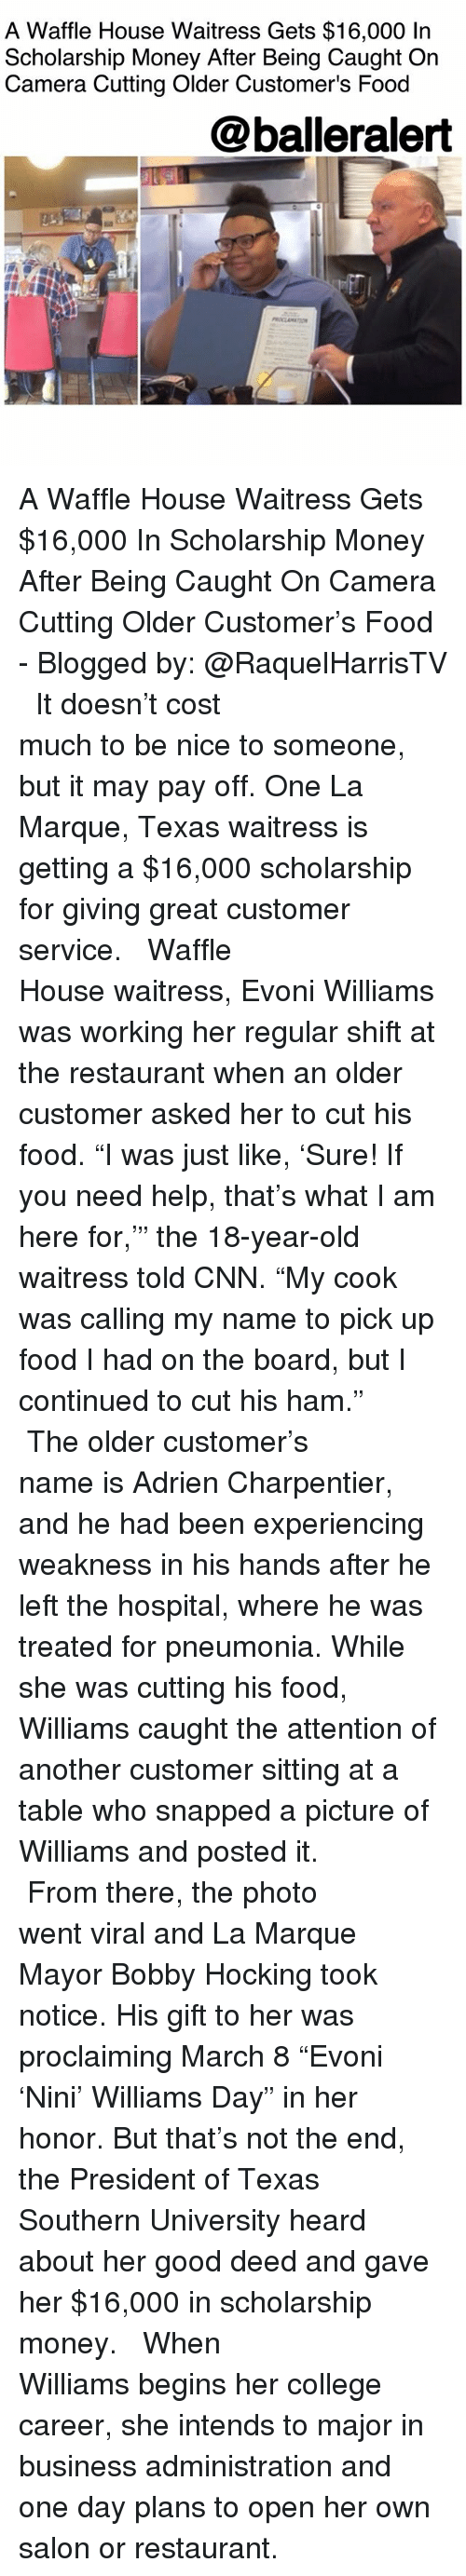 """cnn.com, College, and Food: A Waffle House Waitress Gets $16,000 In  Scholarship Money After Being Caught On  Camera Cutting Older Customer's Food  @balleralert A Waffle House Waitress Gets $16,000 In Scholarship Money After Being Caught On Camera Cutting Older Customer's Food - Blogged by: @RaquelHarrisTV ⠀⠀⠀⠀⠀⠀⠀⠀⠀ ⠀⠀⠀⠀⠀⠀⠀⠀⠀ It doesn't cost much to be nice to someone, but it may pay off. One La Marque, Texas waitress is getting a $16,000 scholarship for giving great customer service. ⠀⠀⠀⠀⠀⠀⠀⠀⠀ ⠀⠀⠀⠀⠀⠀⠀⠀⠀ Waffle House waitress, Evoni Williams was working her regular shift at the restaurant when an older customer asked her to cut his food. """"I was just like, 'Sure! If you need help, that's what I am here for,'"""" the 18-year-old waitress told CNN. """"My cook was calling my name to pick up food I had on the board, but I continued to cut his ham."""" ⠀⠀⠀⠀⠀⠀⠀⠀⠀ ⠀⠀⠀⠀⠀⠀⠀⠀⠀ The older customer's name is Adrien Charpentier, and he had been experiencing weakness in his hands after he left the hospital, where he was treated for pneumonia. While she was cutting his food, Williams caught the attention of another customer sitting at a table who snapped a picture of Williams and posted it. ⠀⠀⠀⠀⠀⠀⠀⠀⠀ ⠀⠀⠀⠀⠀⠀⠀⠀⠀ From there, the photo went viral and La Marque Mayor Bobby Hocking took notice. His gift to her was proclaiming March 8 """"Evoni 'Nini' Williams Day"""" in her honor. But that's not the end, the President of Texas Southern University heard about her good deed and gave her $16,000 in scholarship money. ⠀⠀⠀⠀⠀⠀⠀⠀⠀ ⠀⠀⠀⠀⠀⠀⠀⠀⠀ When Williams begins her college career, she intends to major in business administration and one day plans to open her own salon or restaurant."""